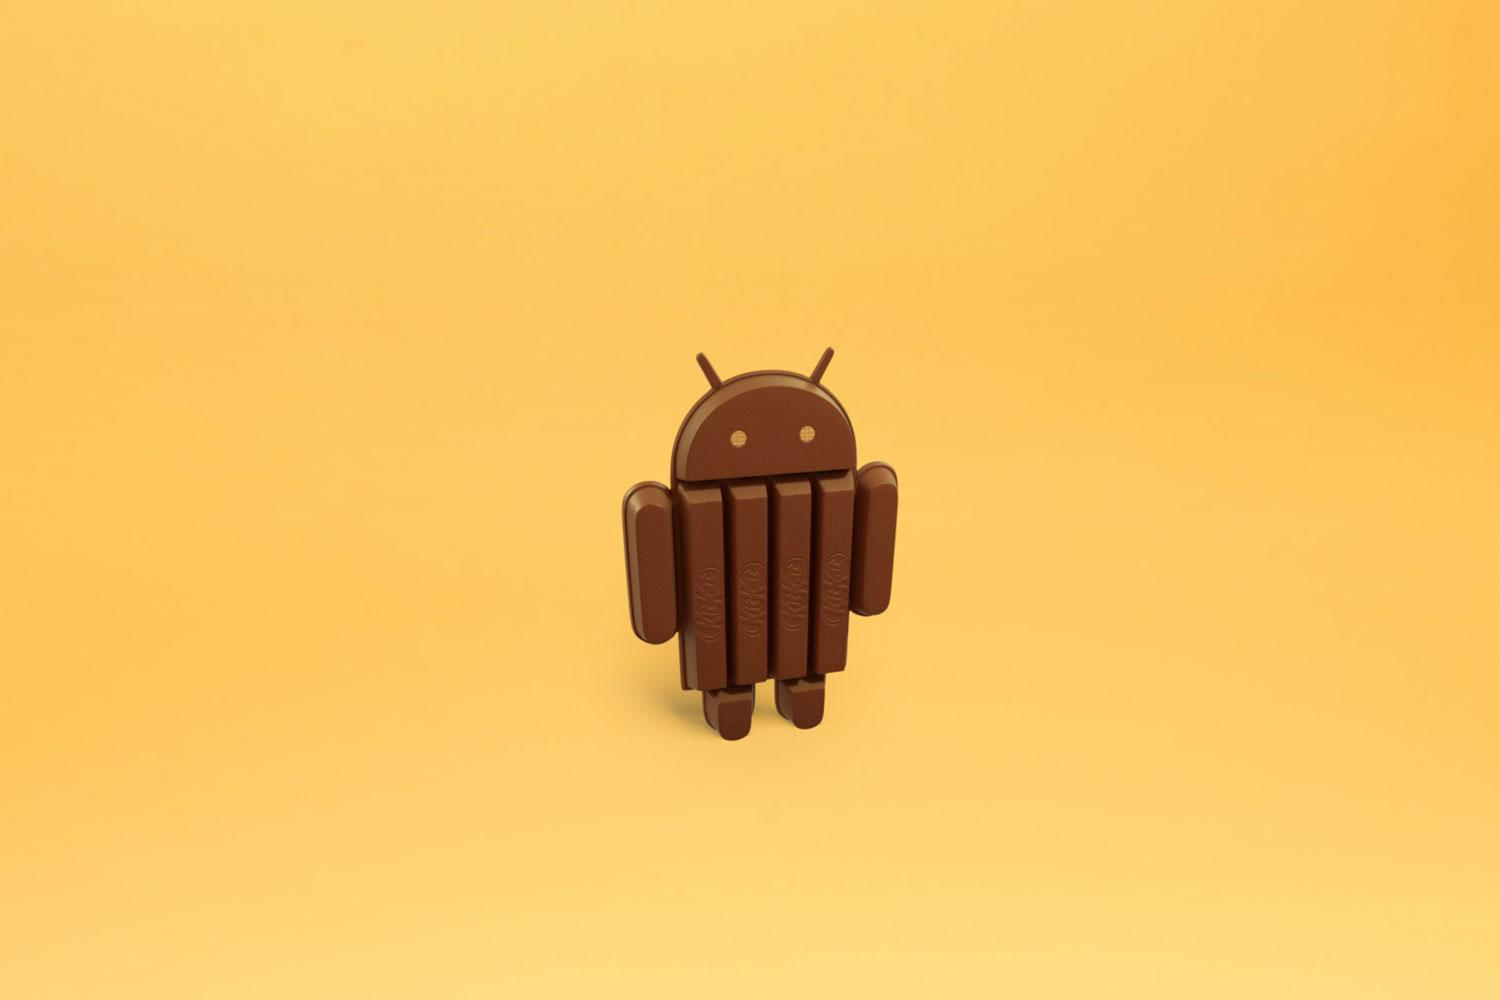 Android 4.4 code named 'KitKat,' co-promoted with Nestle